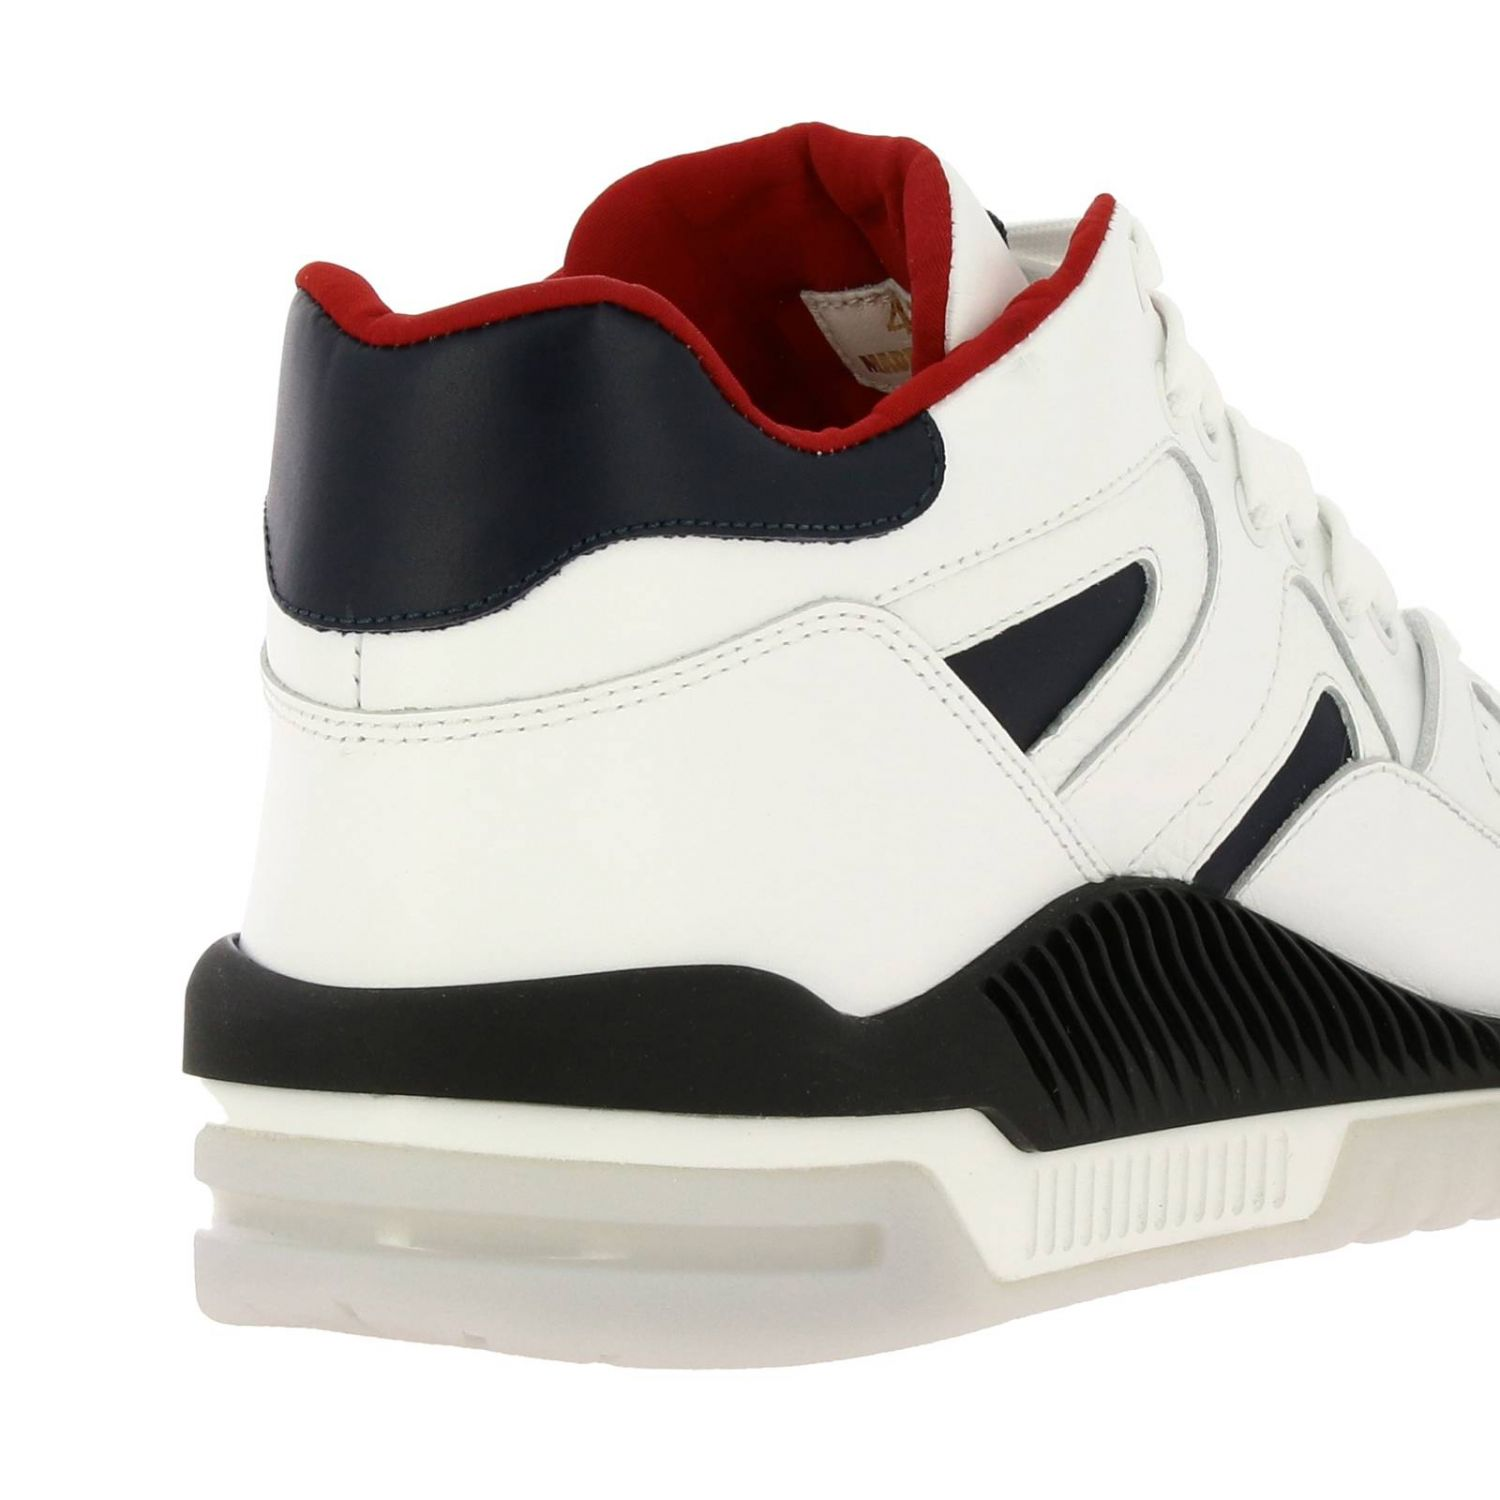 Versace sneakers in leather with maxi rubber sole white 4